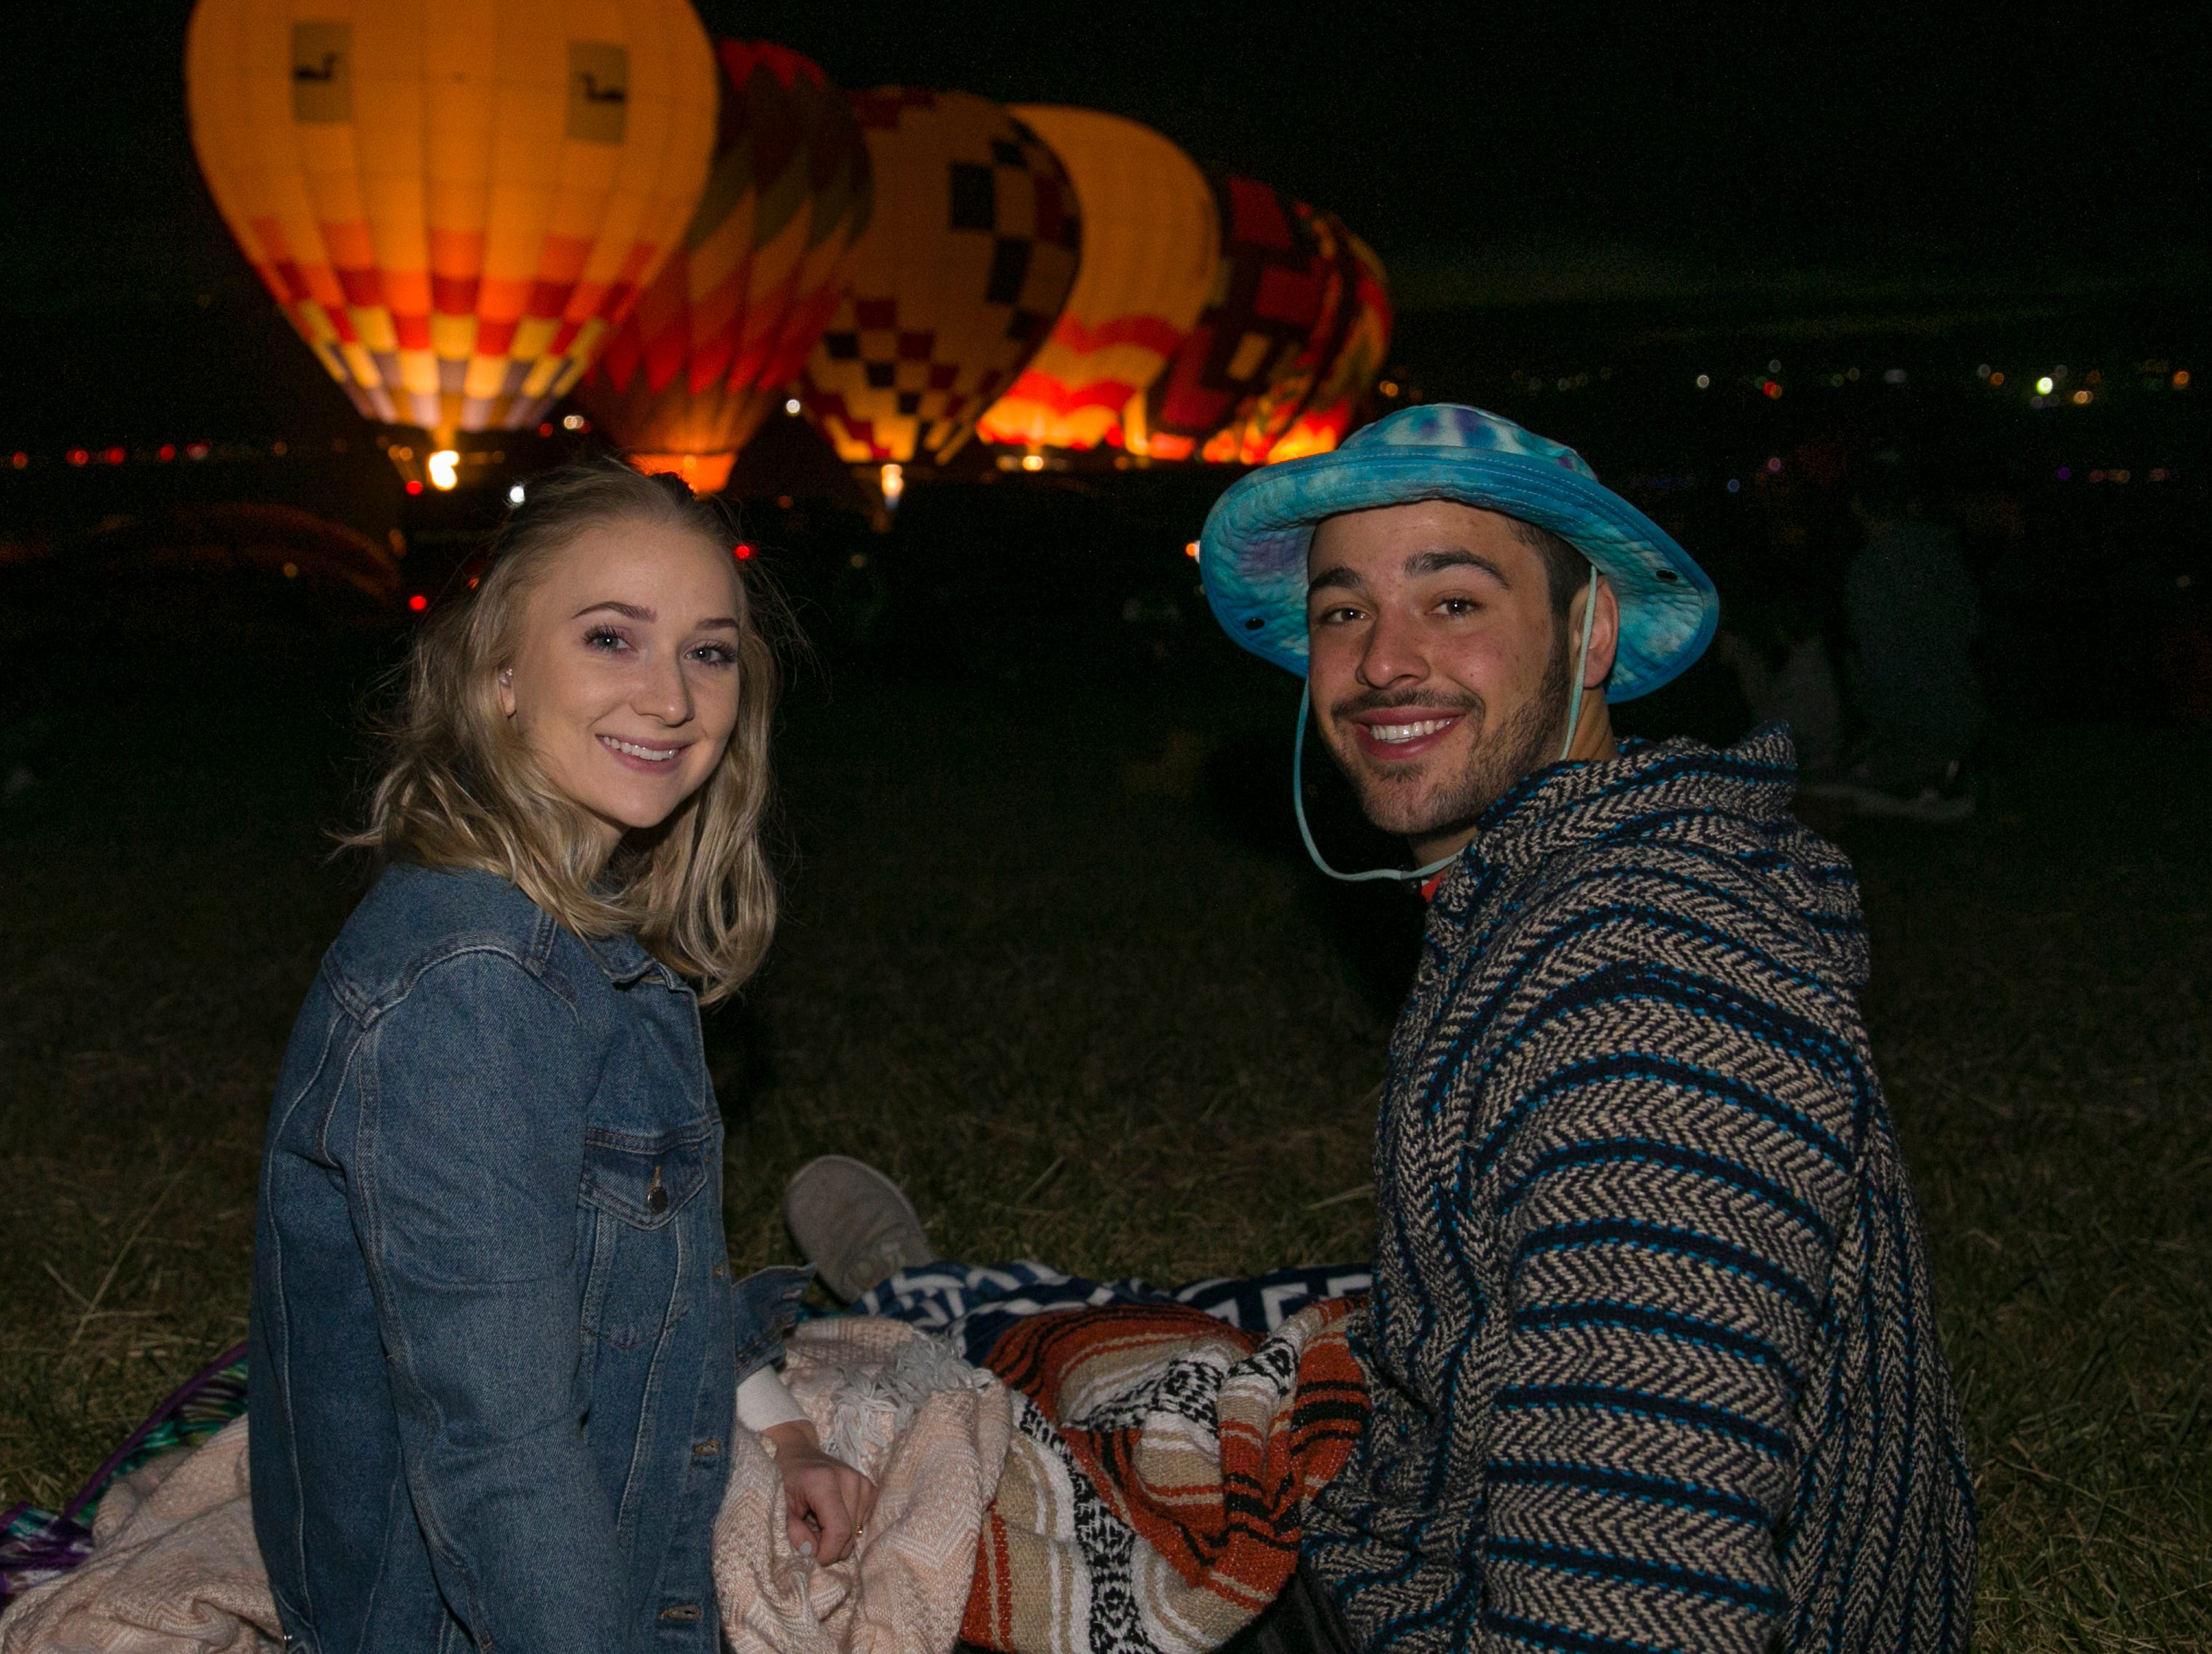 Cecily and Jacob during dawn patrol at the Great Reno Balloon Races held on Saturday, Sept. 8, 2018.